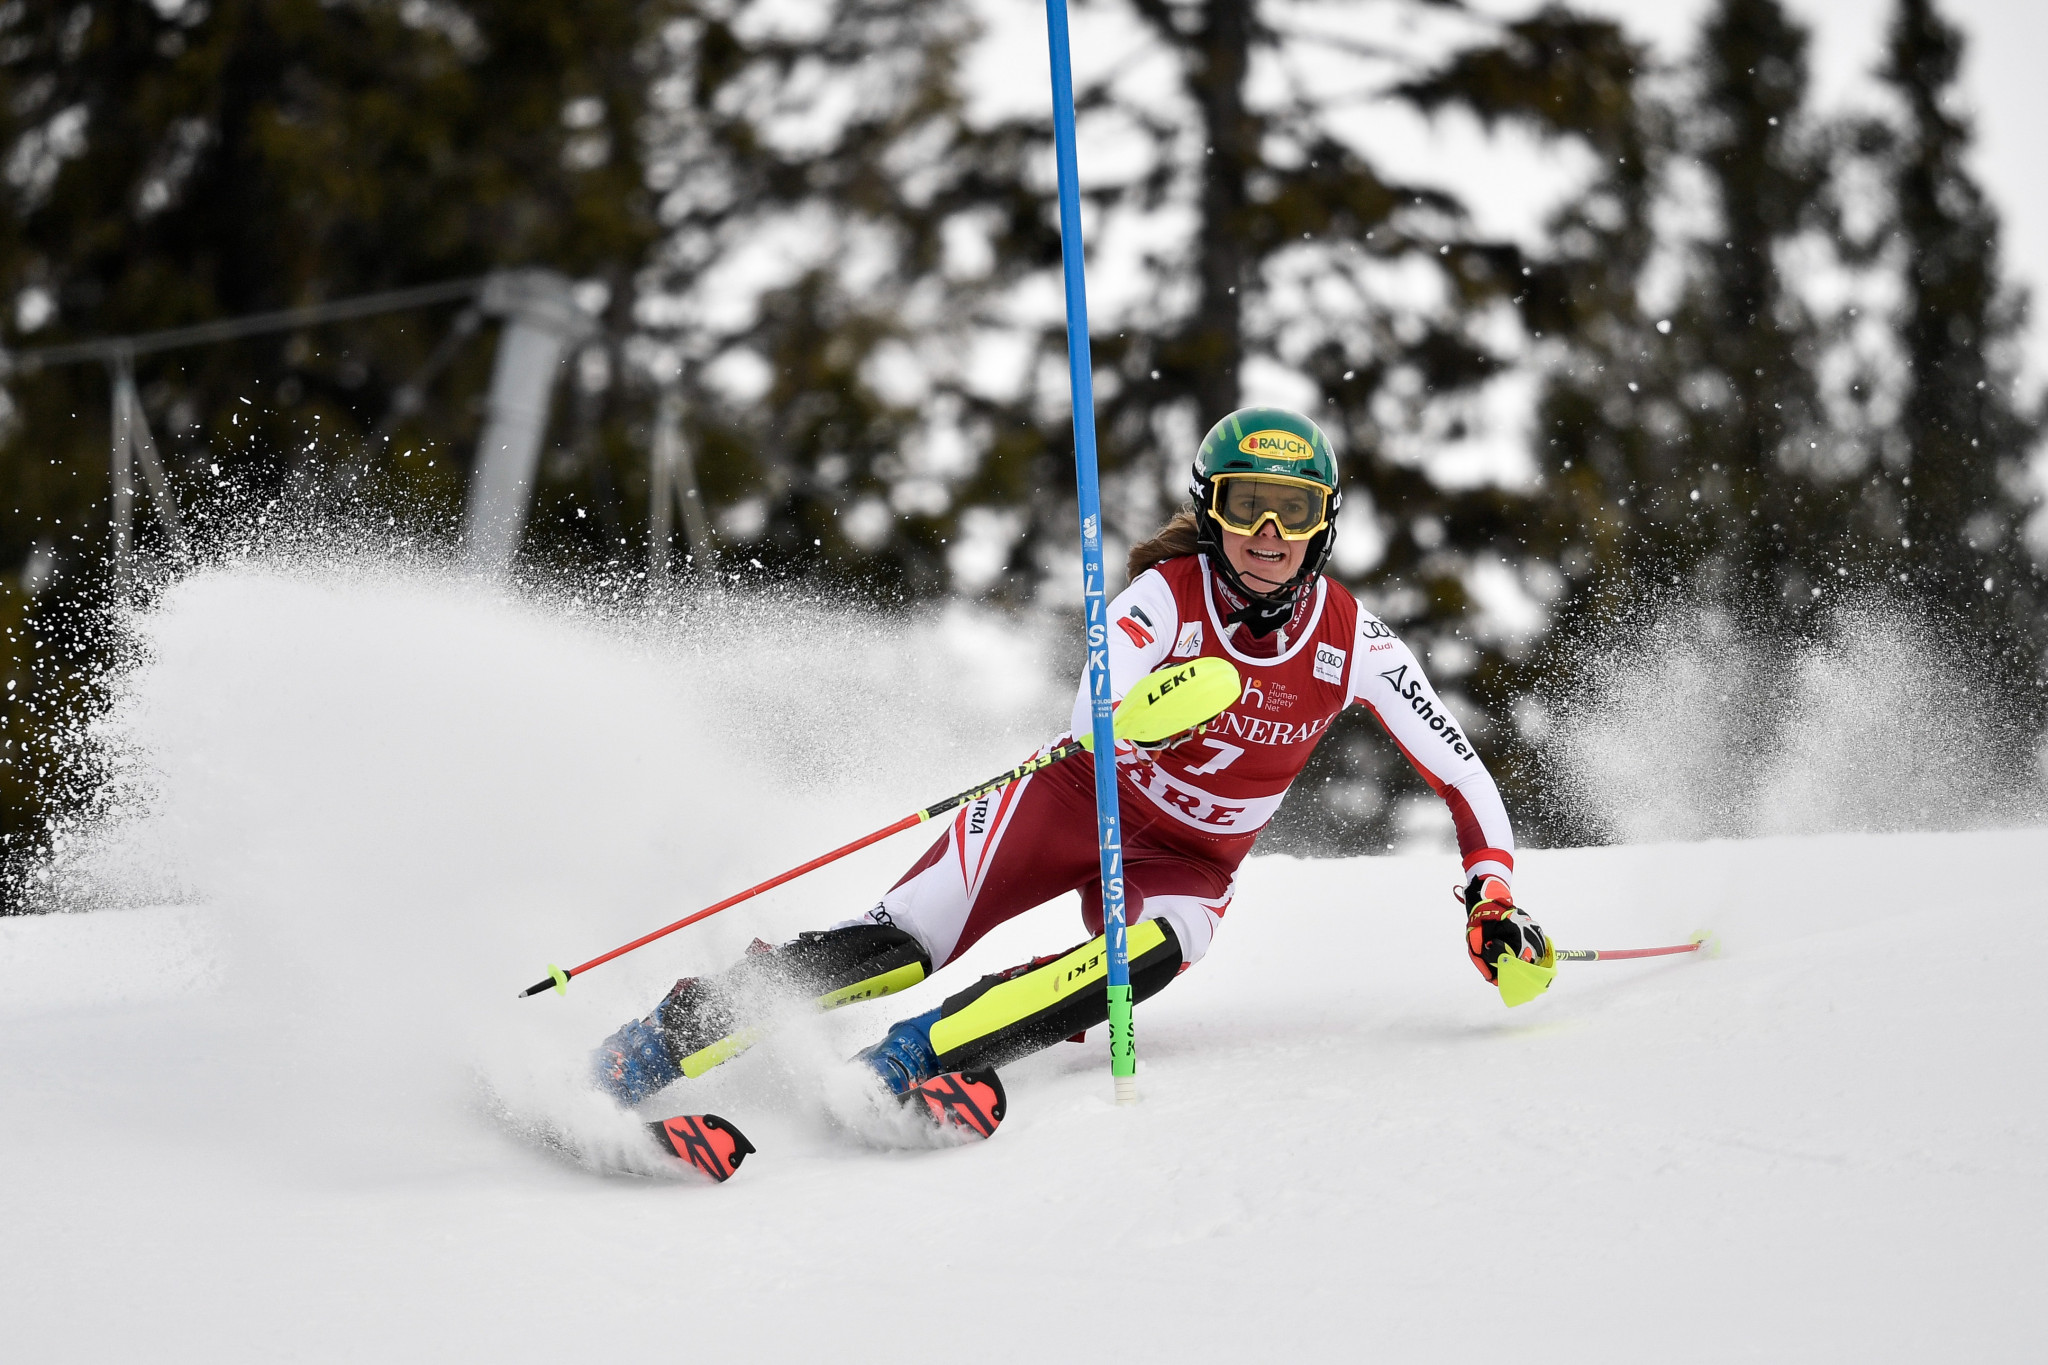 Katharina Liensberger picked up a first World Cup win in Åre ©Getty Images